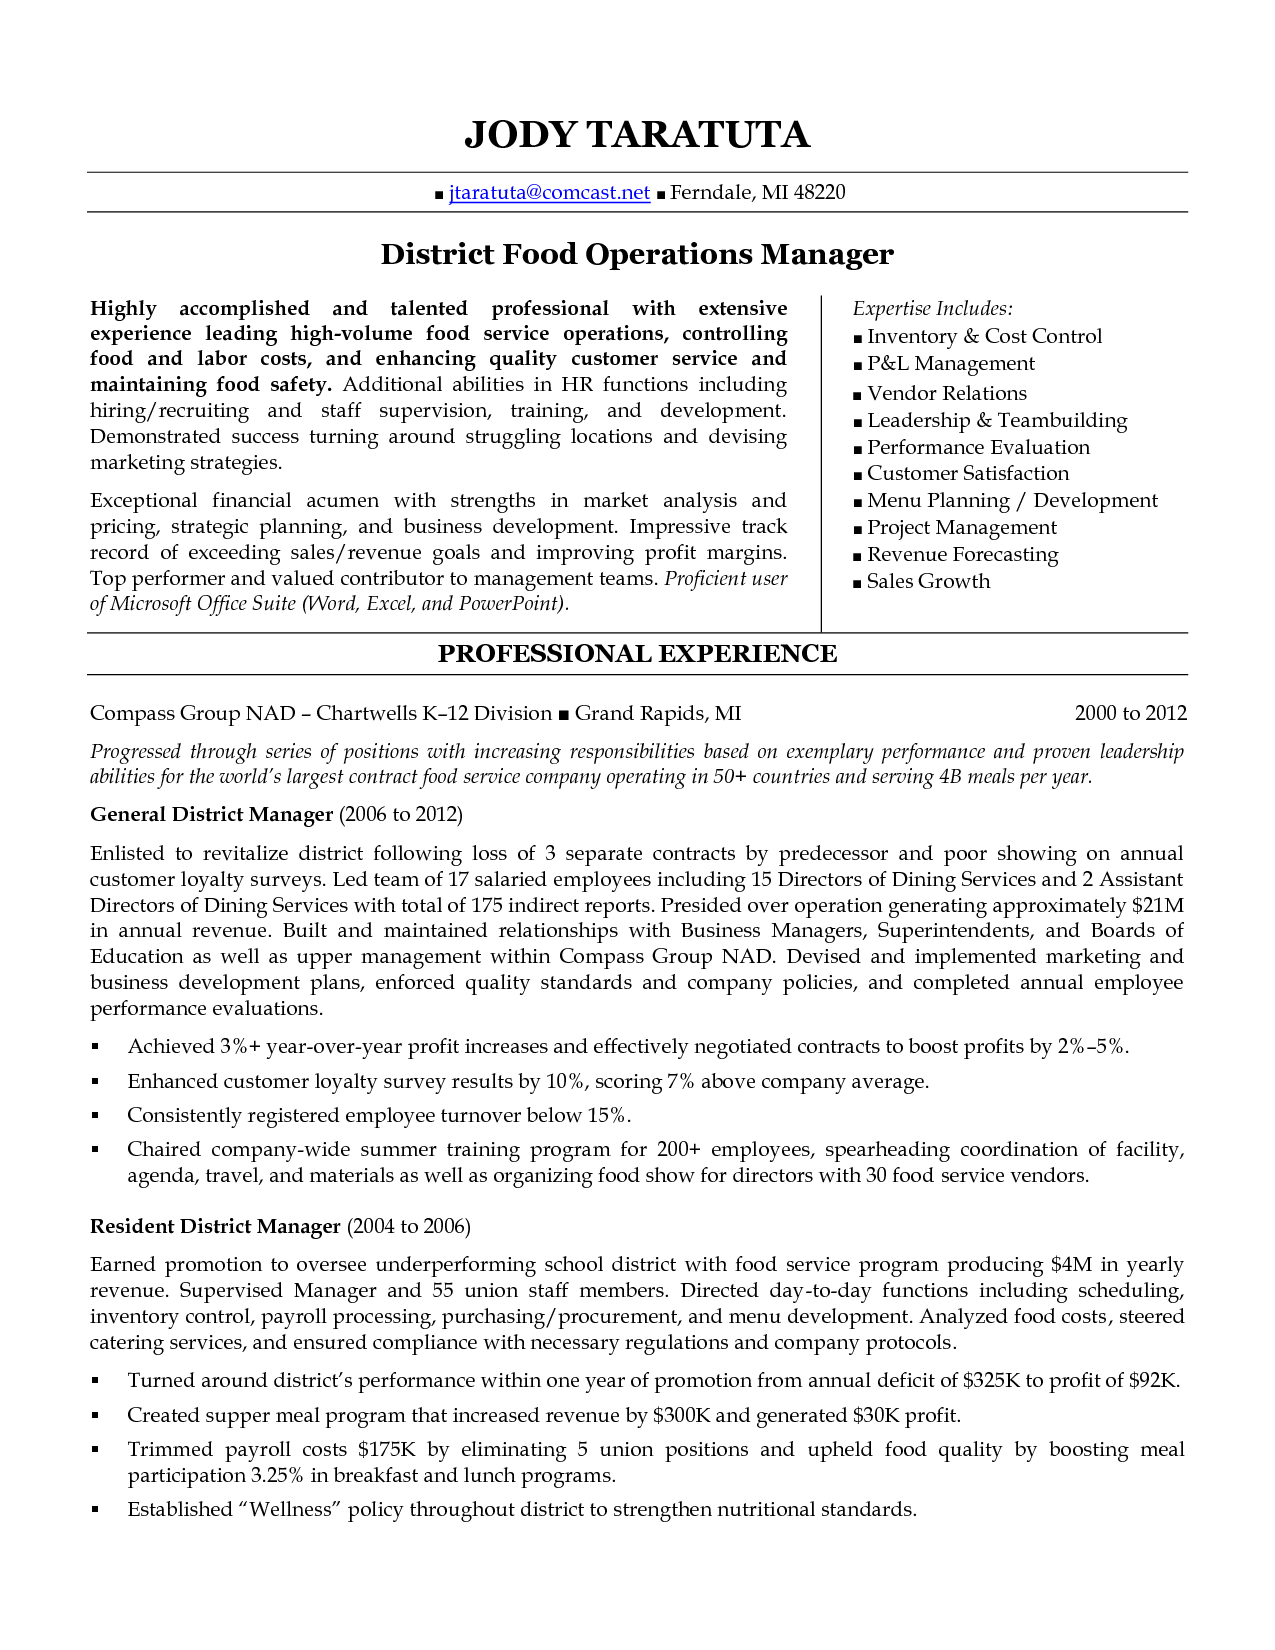 sample resume for restaurant restaurant owner resume restaurant owner resume makemoneywithalex